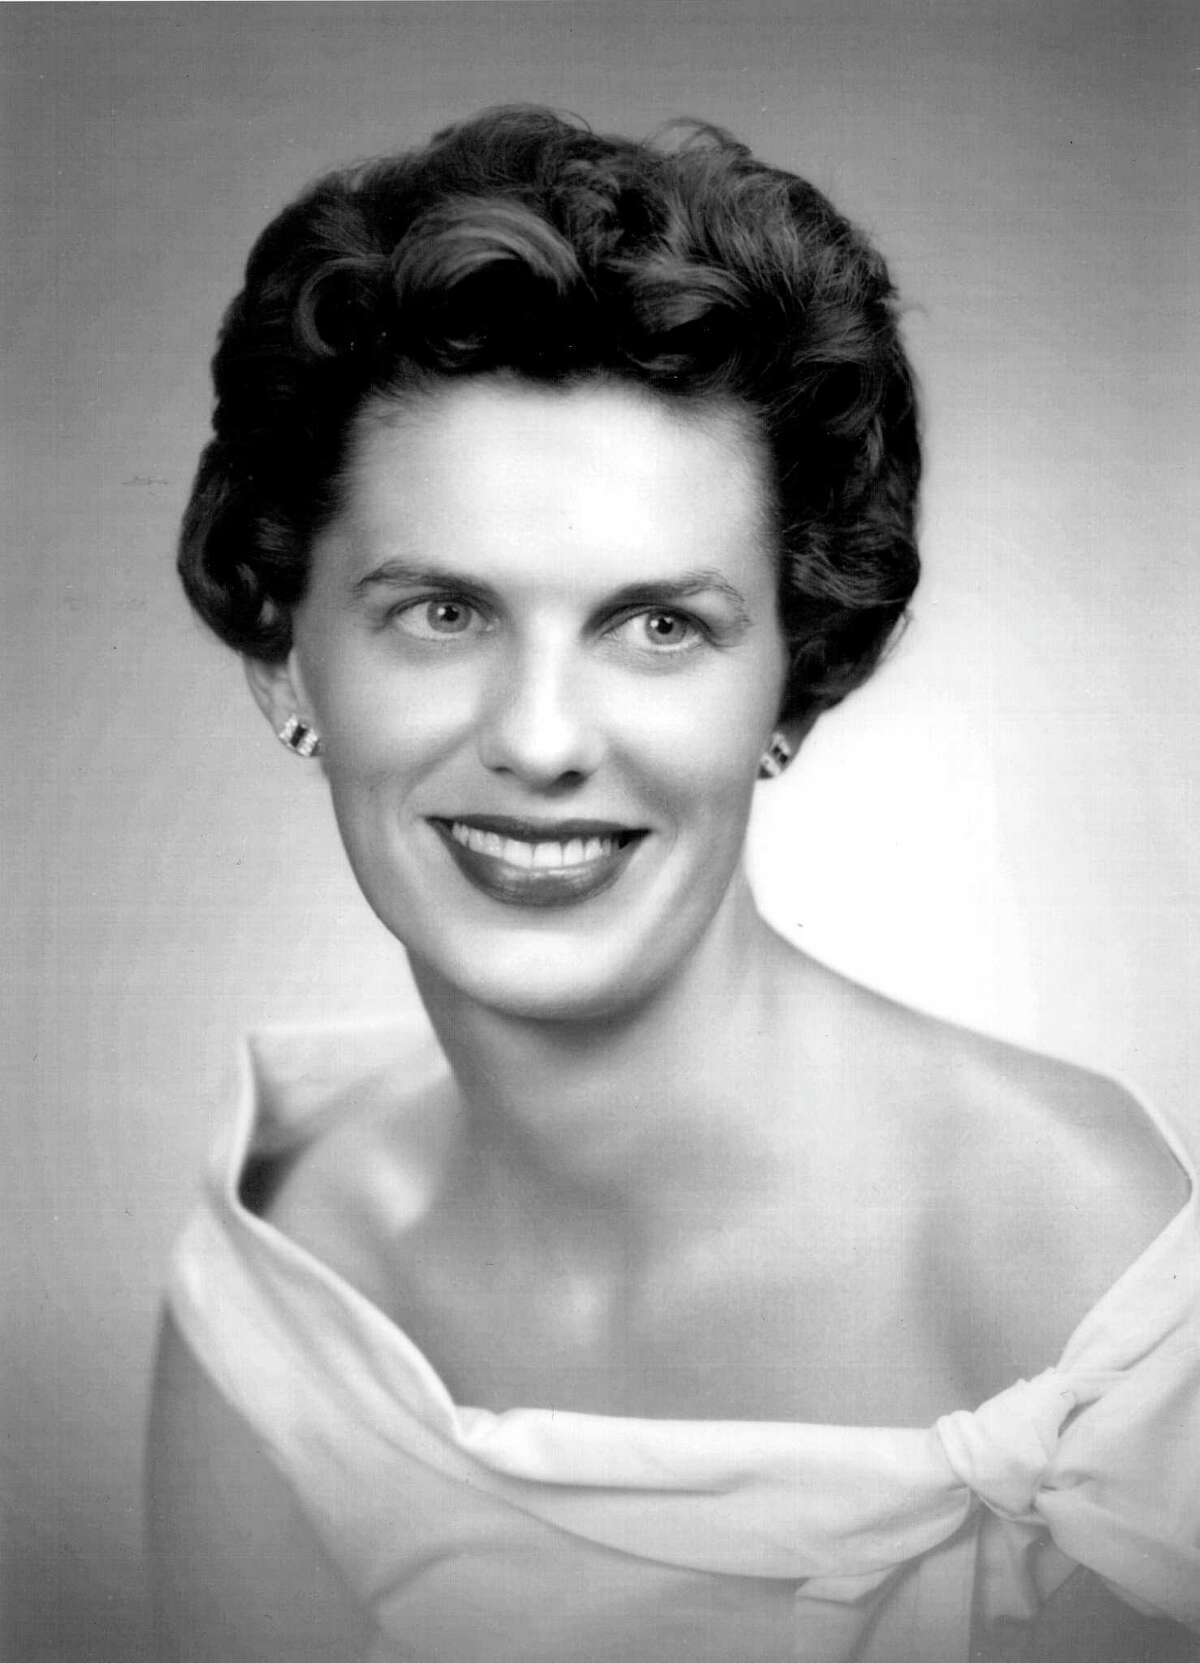 Martha Walls, 87, died at her home on Tuesday of natural causes. Walls was the former publisher of the Galveston County Daily News. She was the widow of newspaper entrepreneur B. Carmage Walls and was chairman of the board of Southern Newspapers, Inc. of Houston.